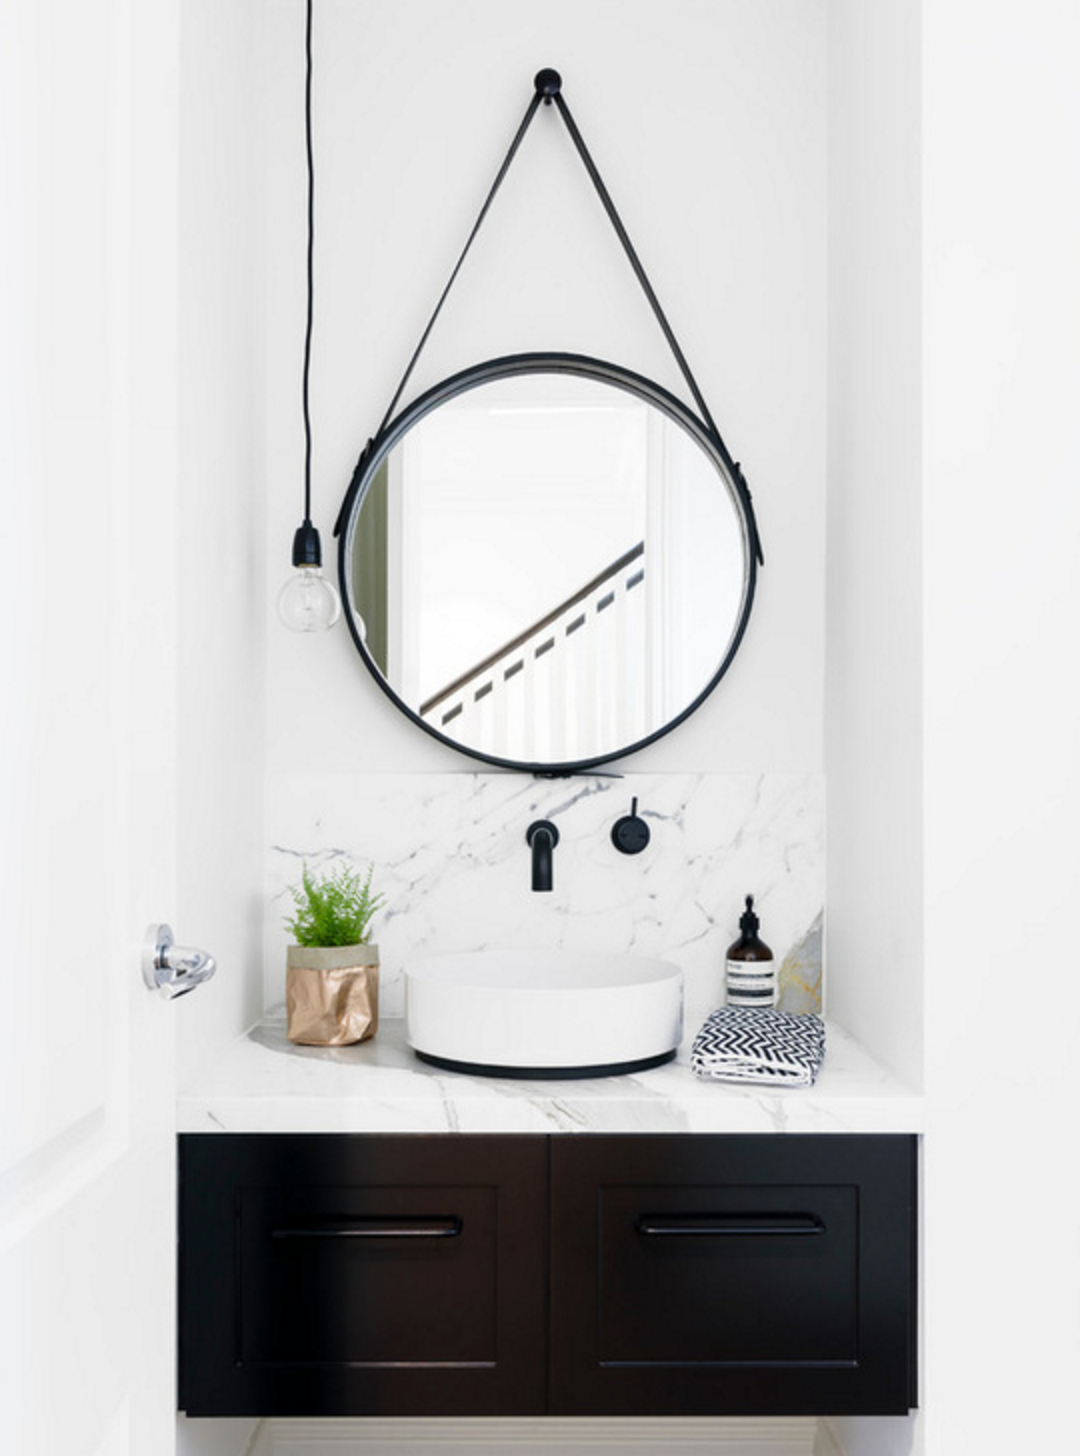 Hub Modern And Contemporary Accent Mirror | Interiors Regarding Hub Modern And Contemporary Accent Mirrors (View 16 of 30)